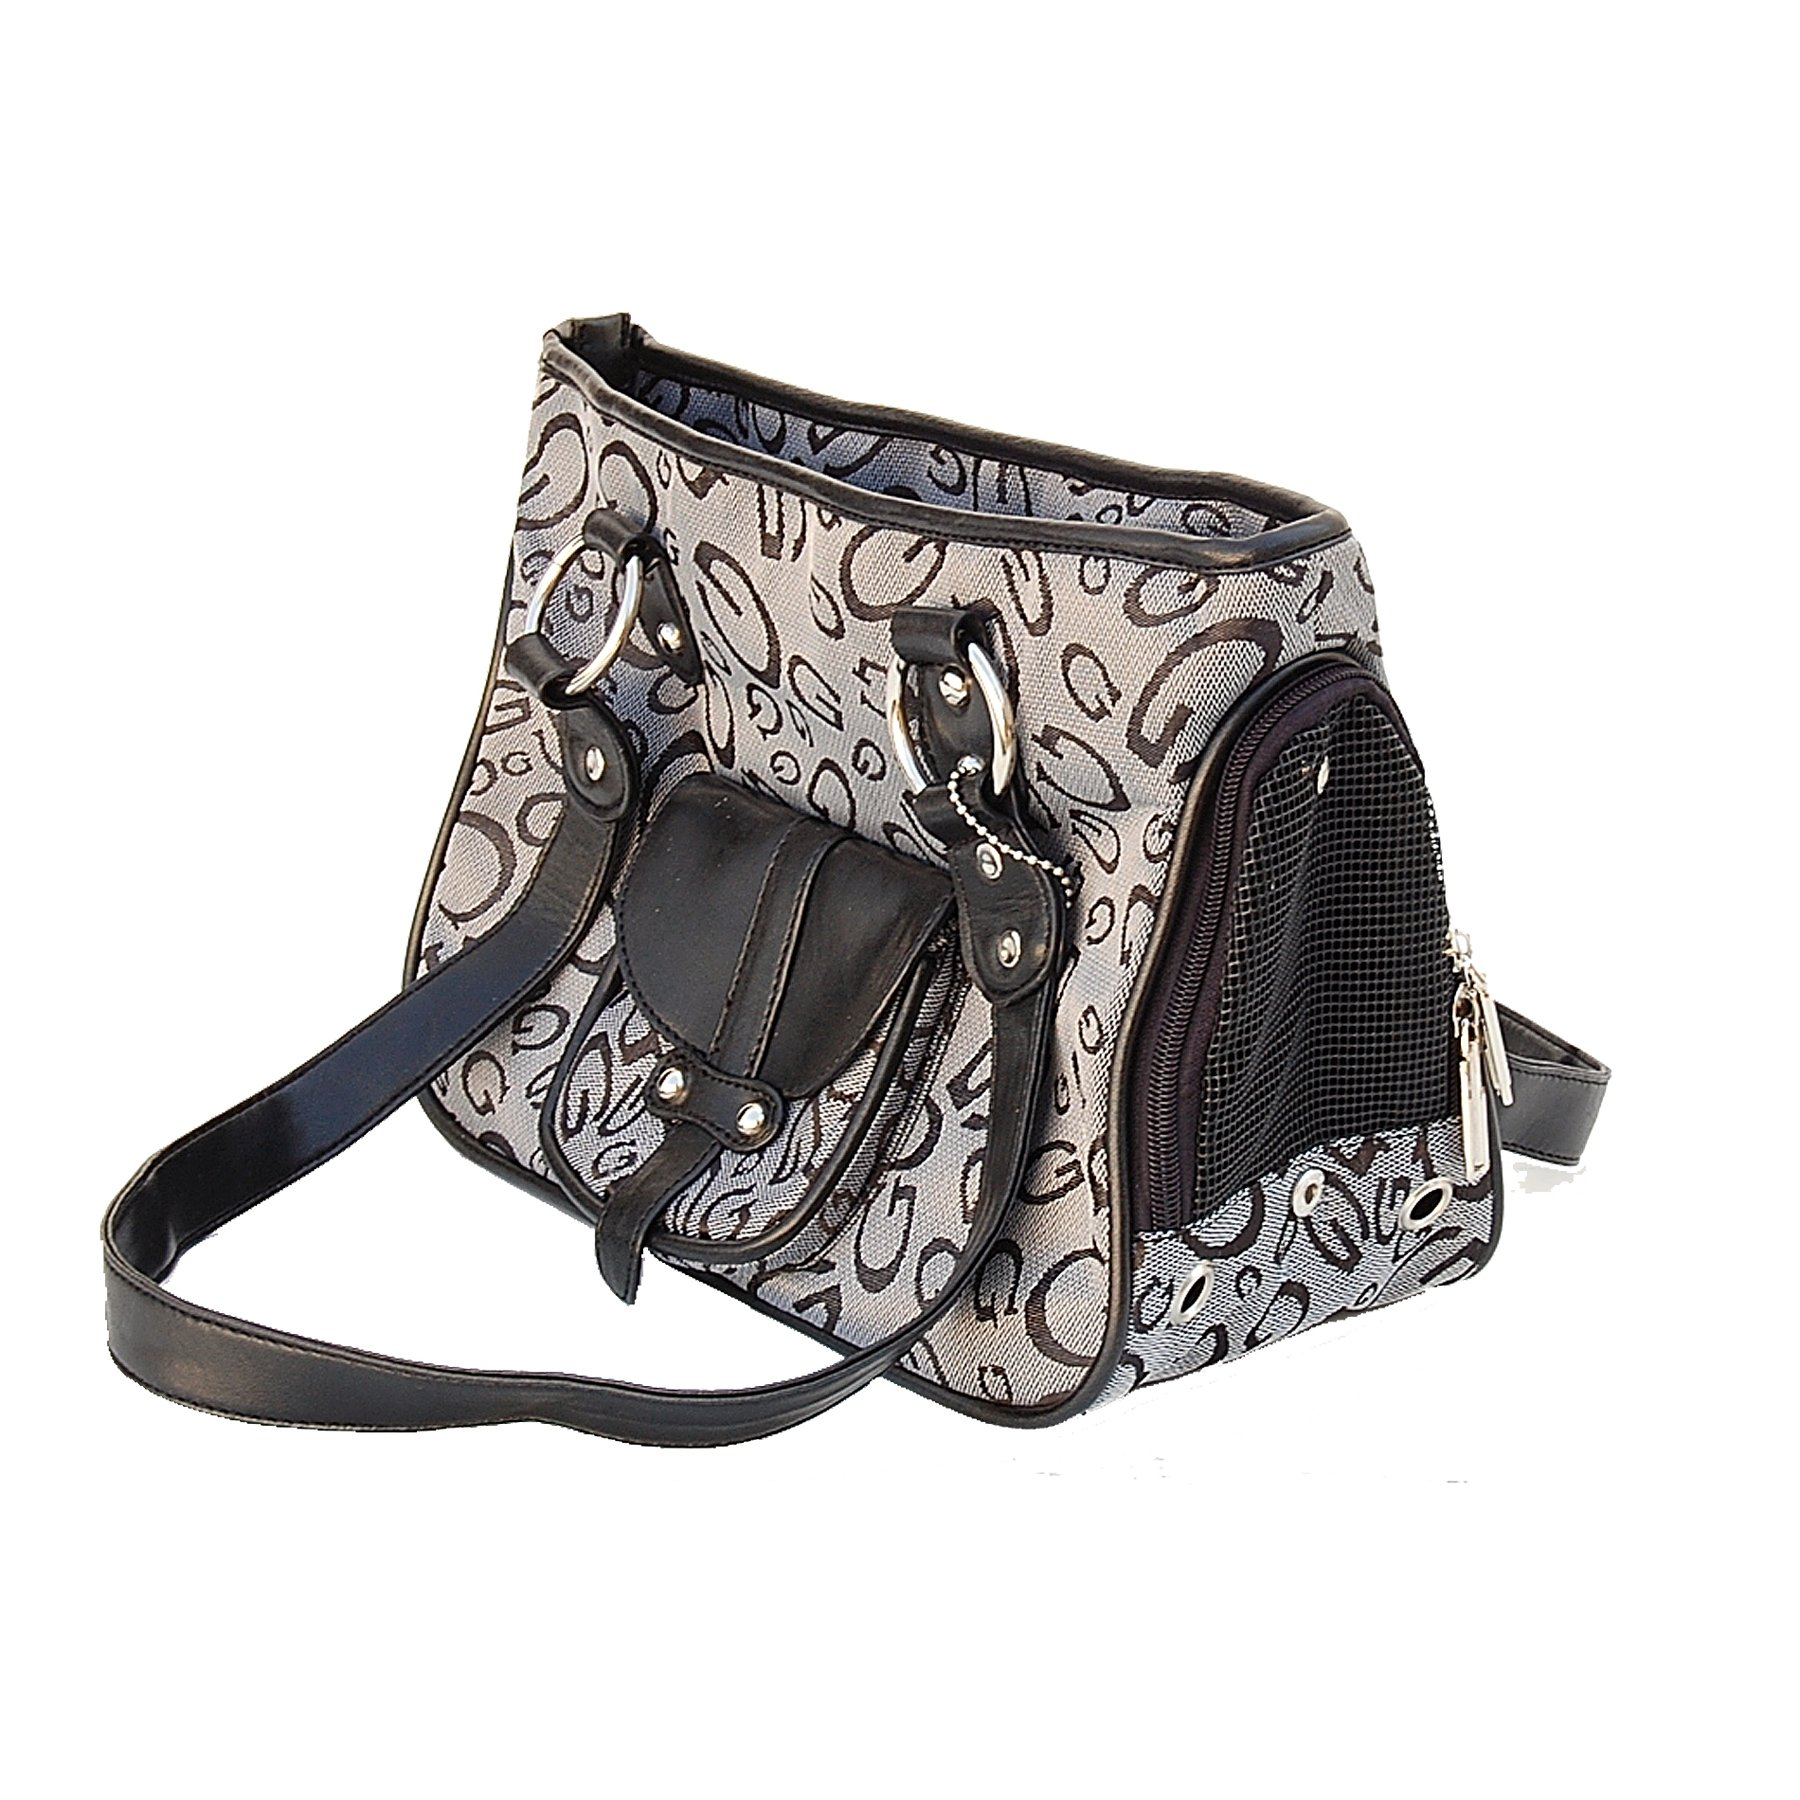 Anima Designer Printed Purse 14.5-Inch by 6-Inch by 10-Inch